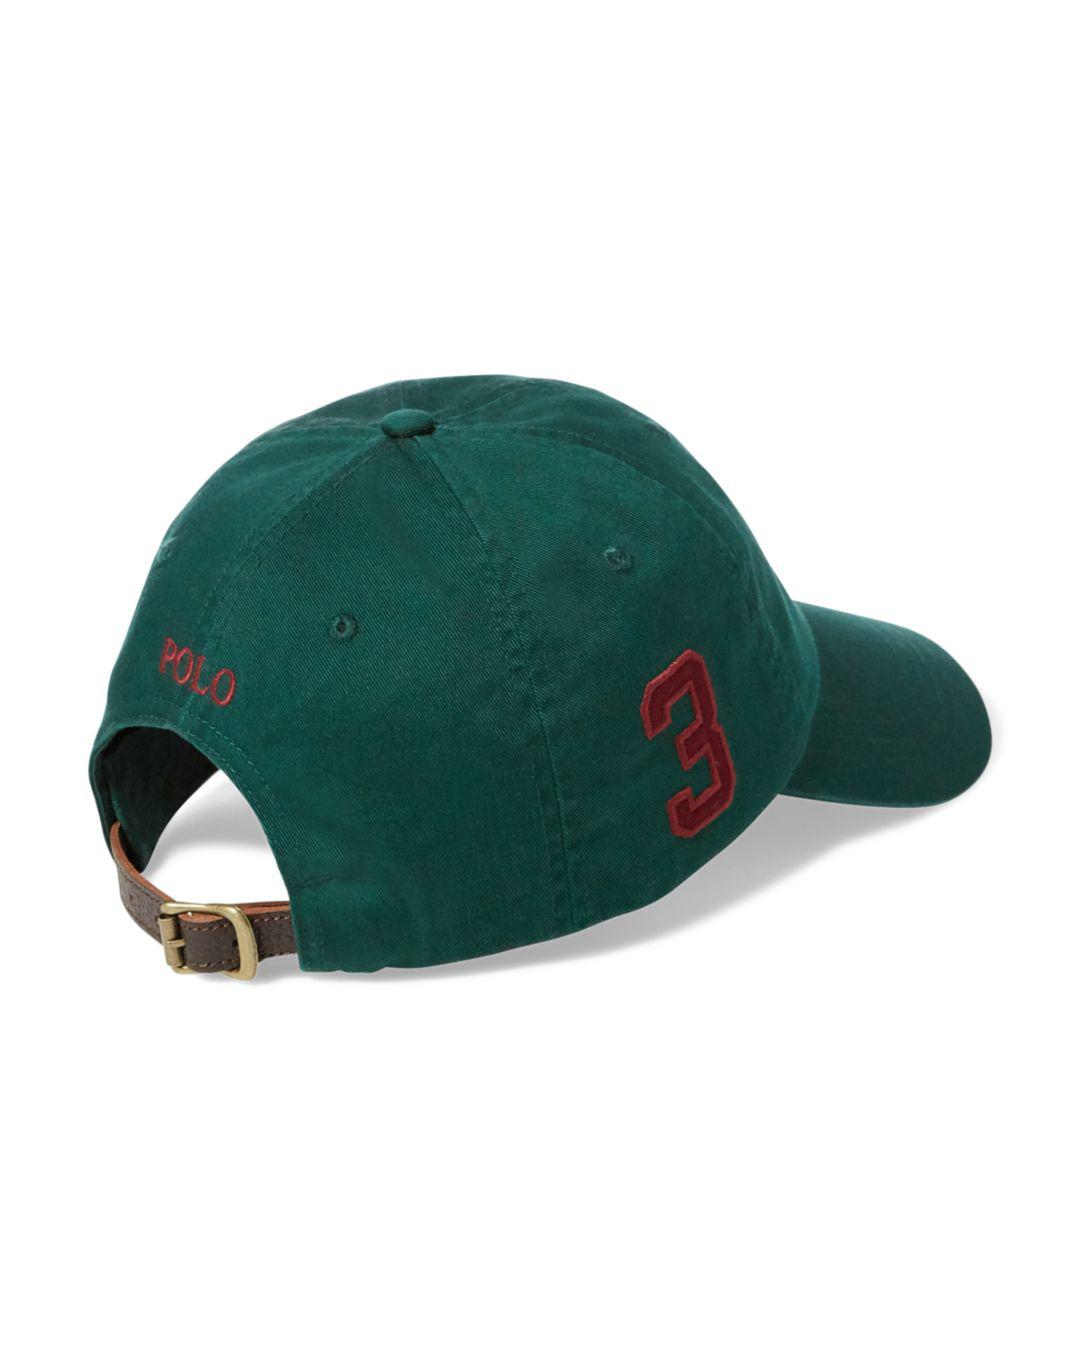 ... Lyst - Polo Ralph Lauren Polo Logo Chino Baseball Cap in Green for Men  buying now ... ef9db9d69c80